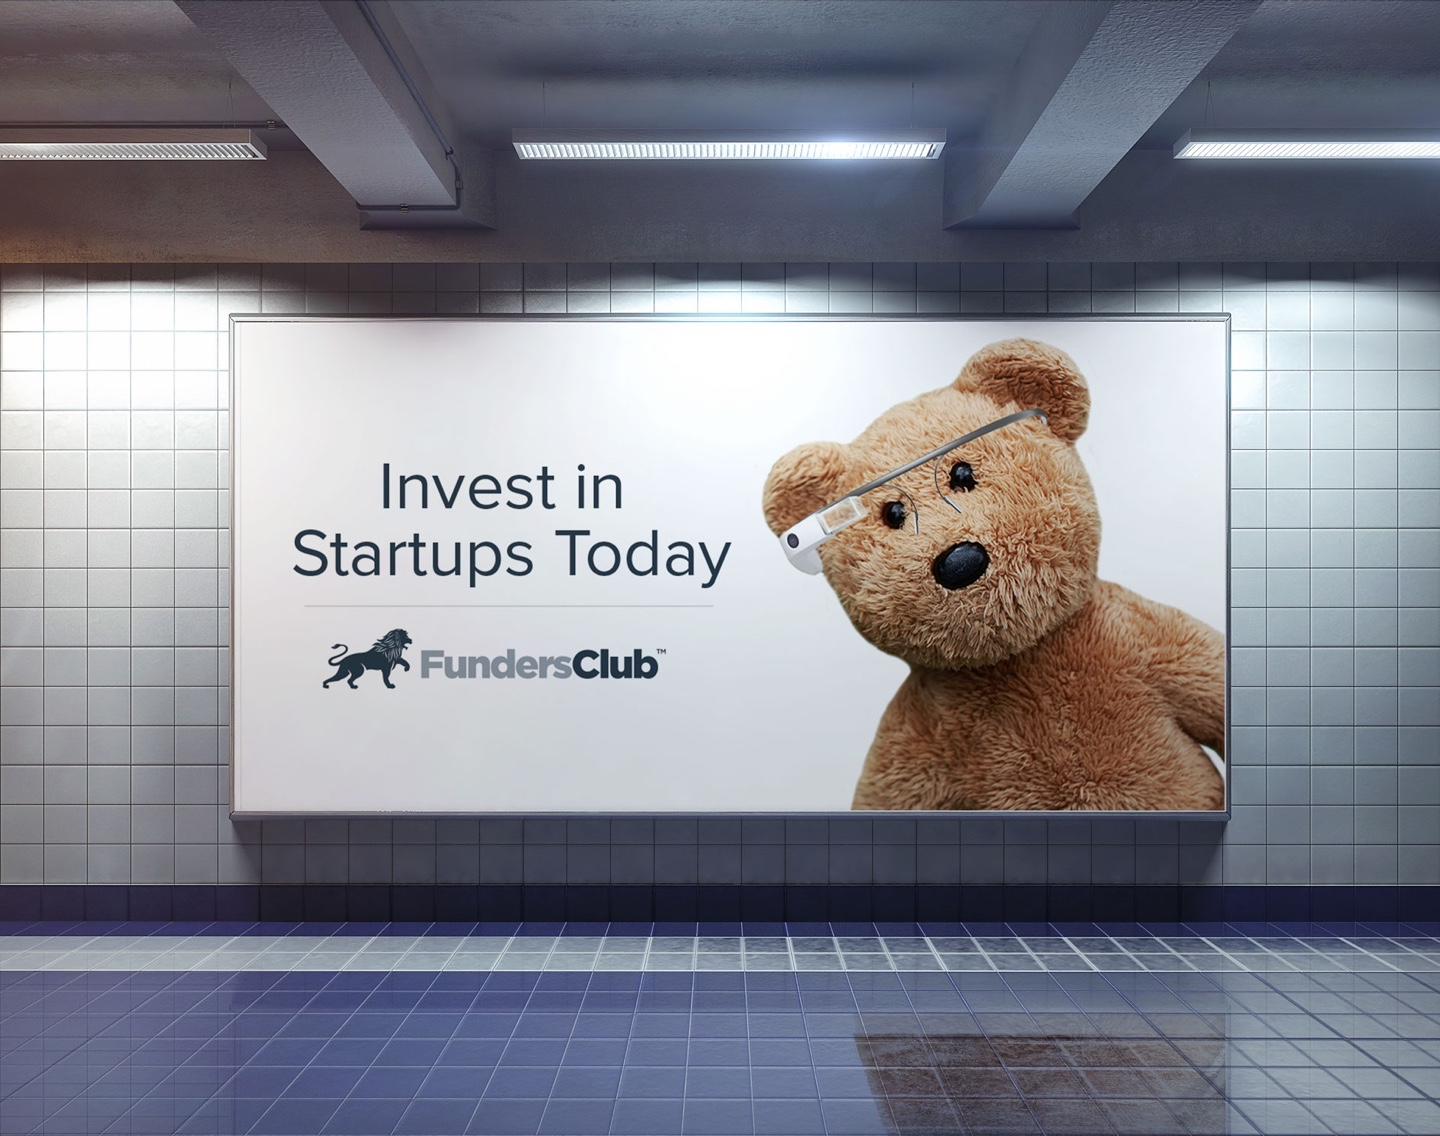 Invest in startups today